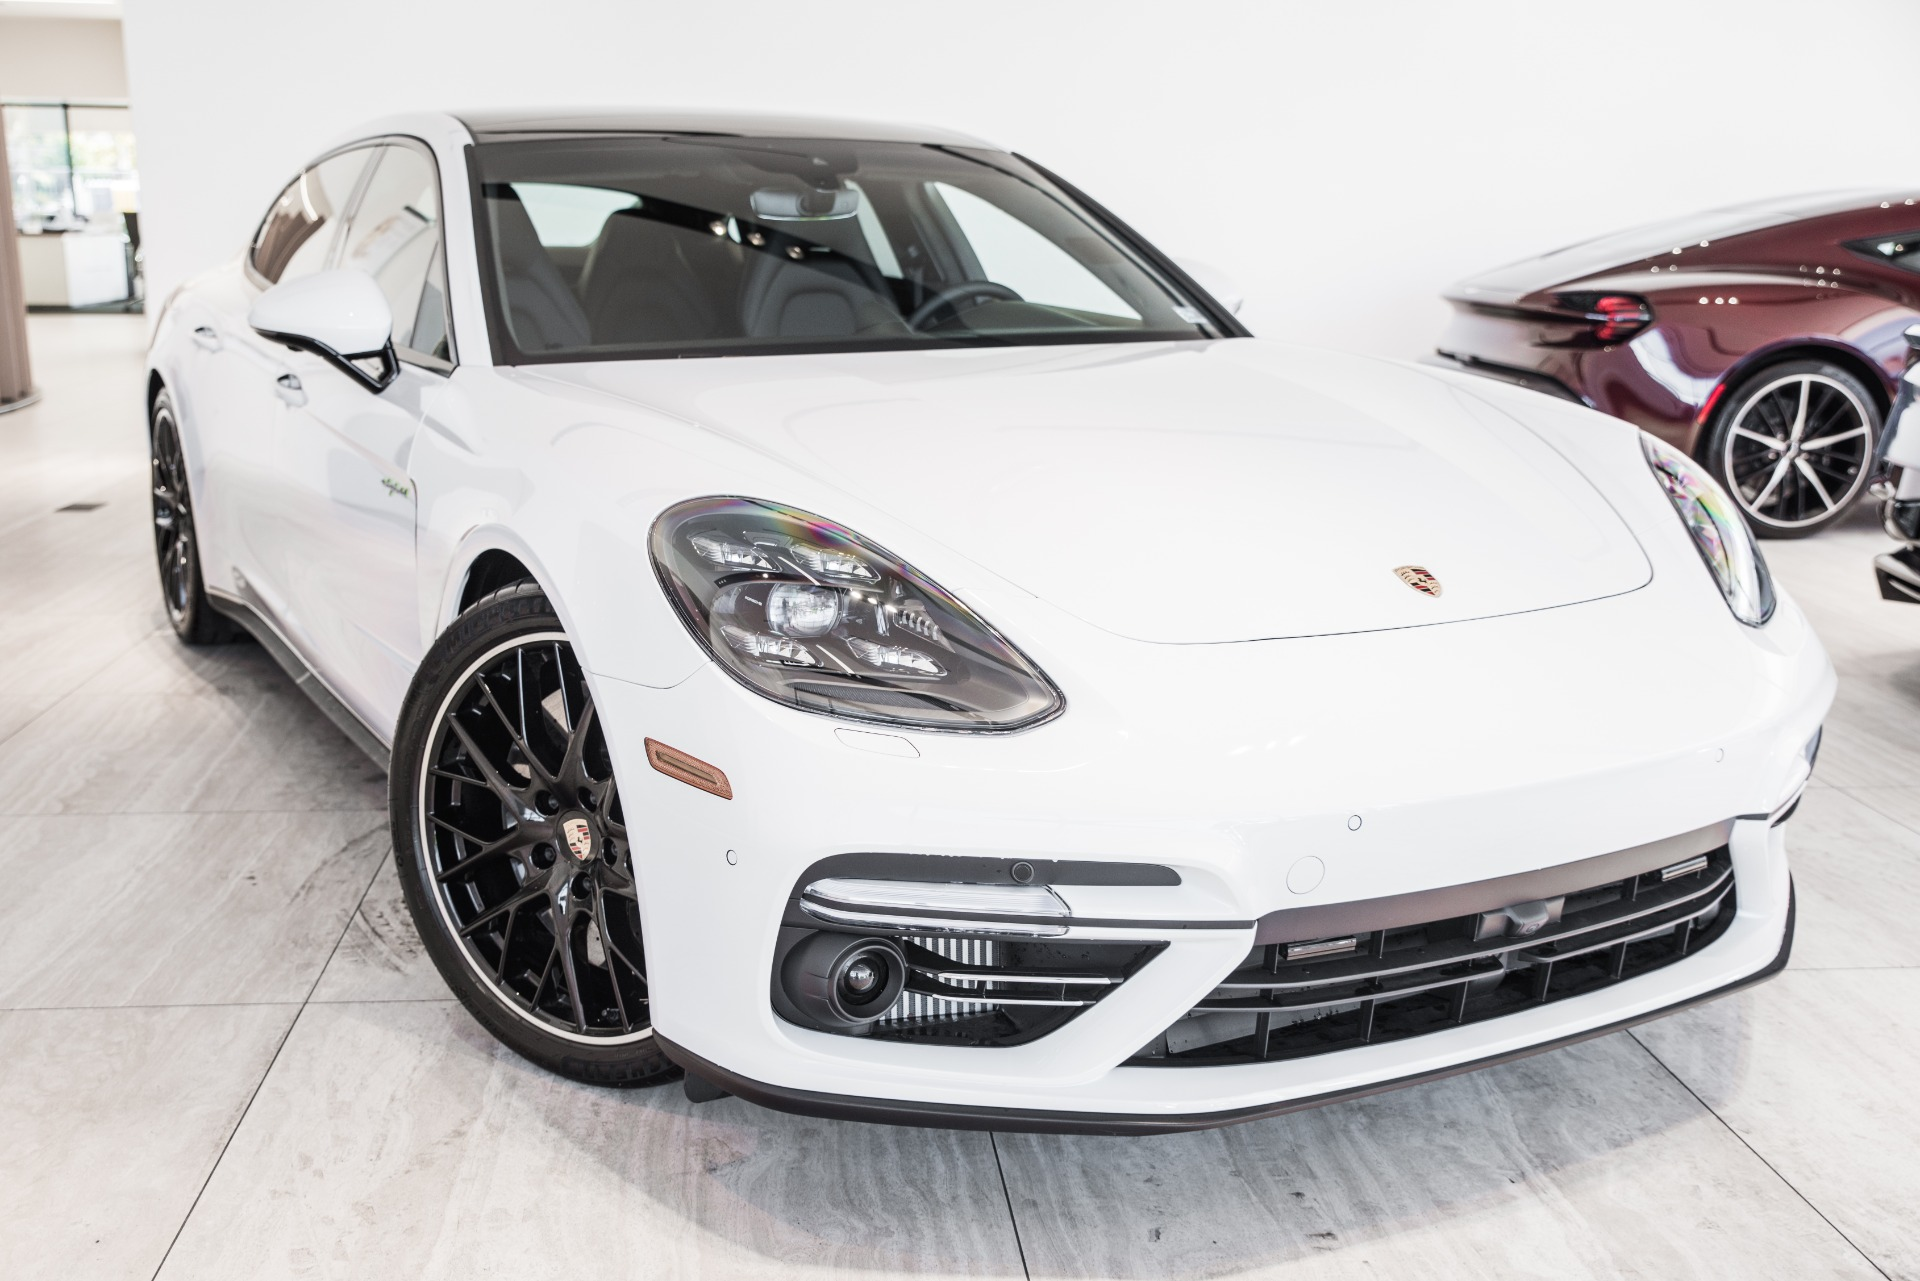 Porsche Dealers In Va >> 2018 Porsche Panamera Turbo S E Hybrid Executive Stock